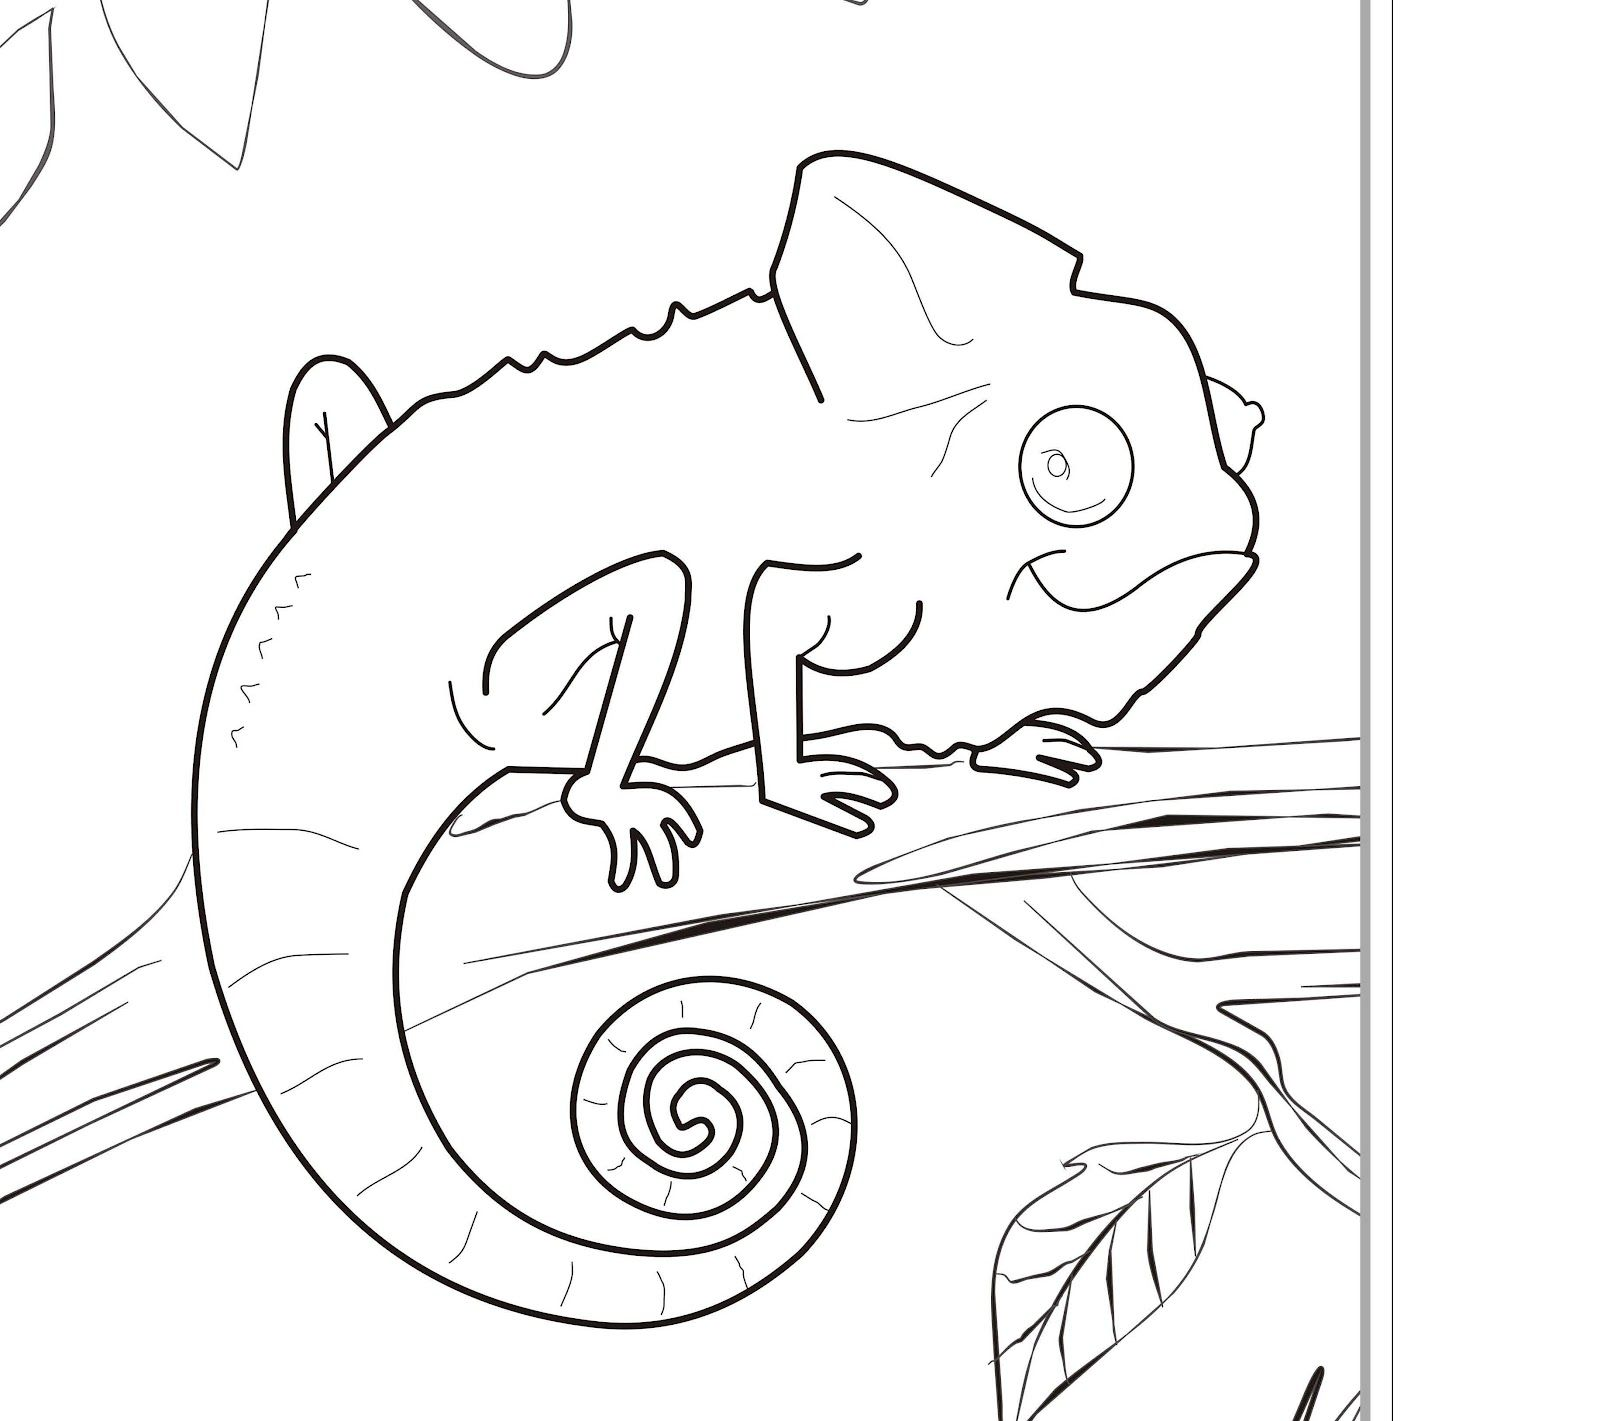 Cute Zoo Animals Coloring Pages, Zoo Animal Coloring Pages